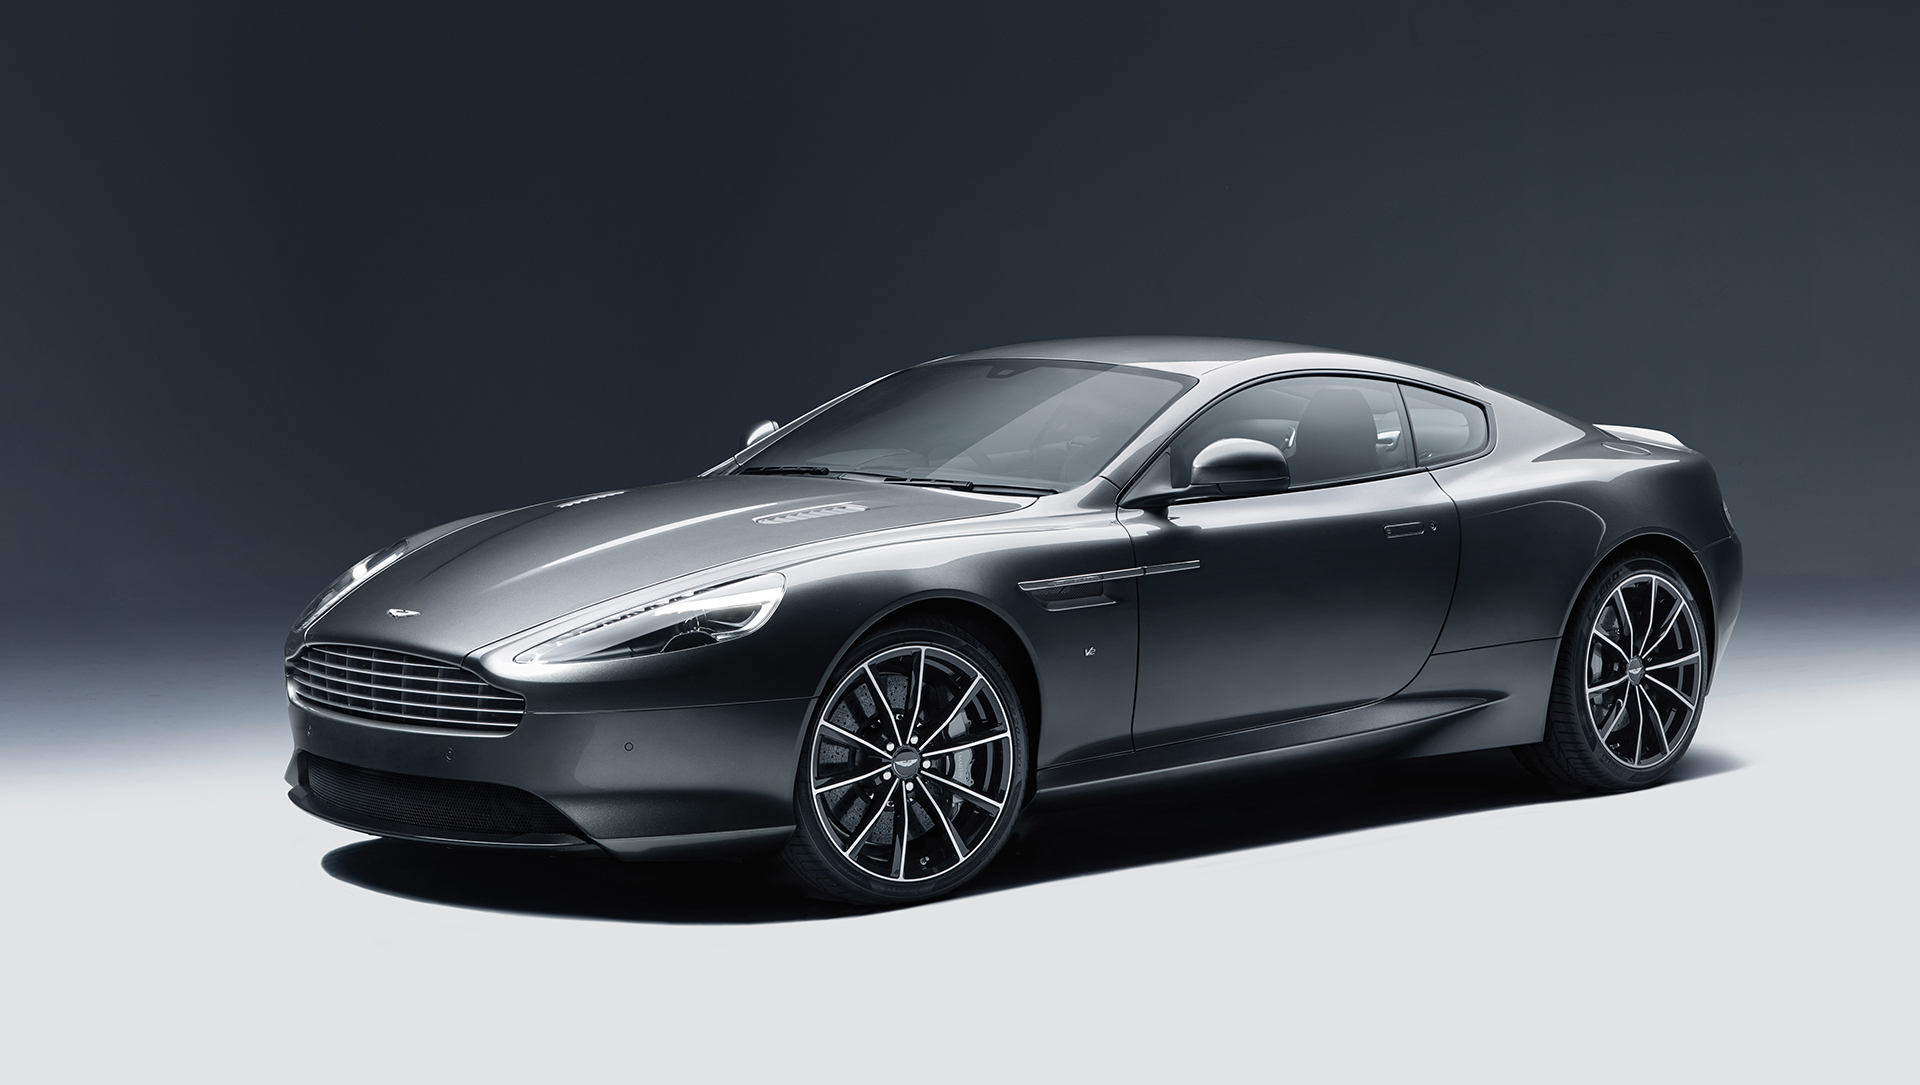 Aston Martin DB9 GT - 2015 - profil avant / front side-face